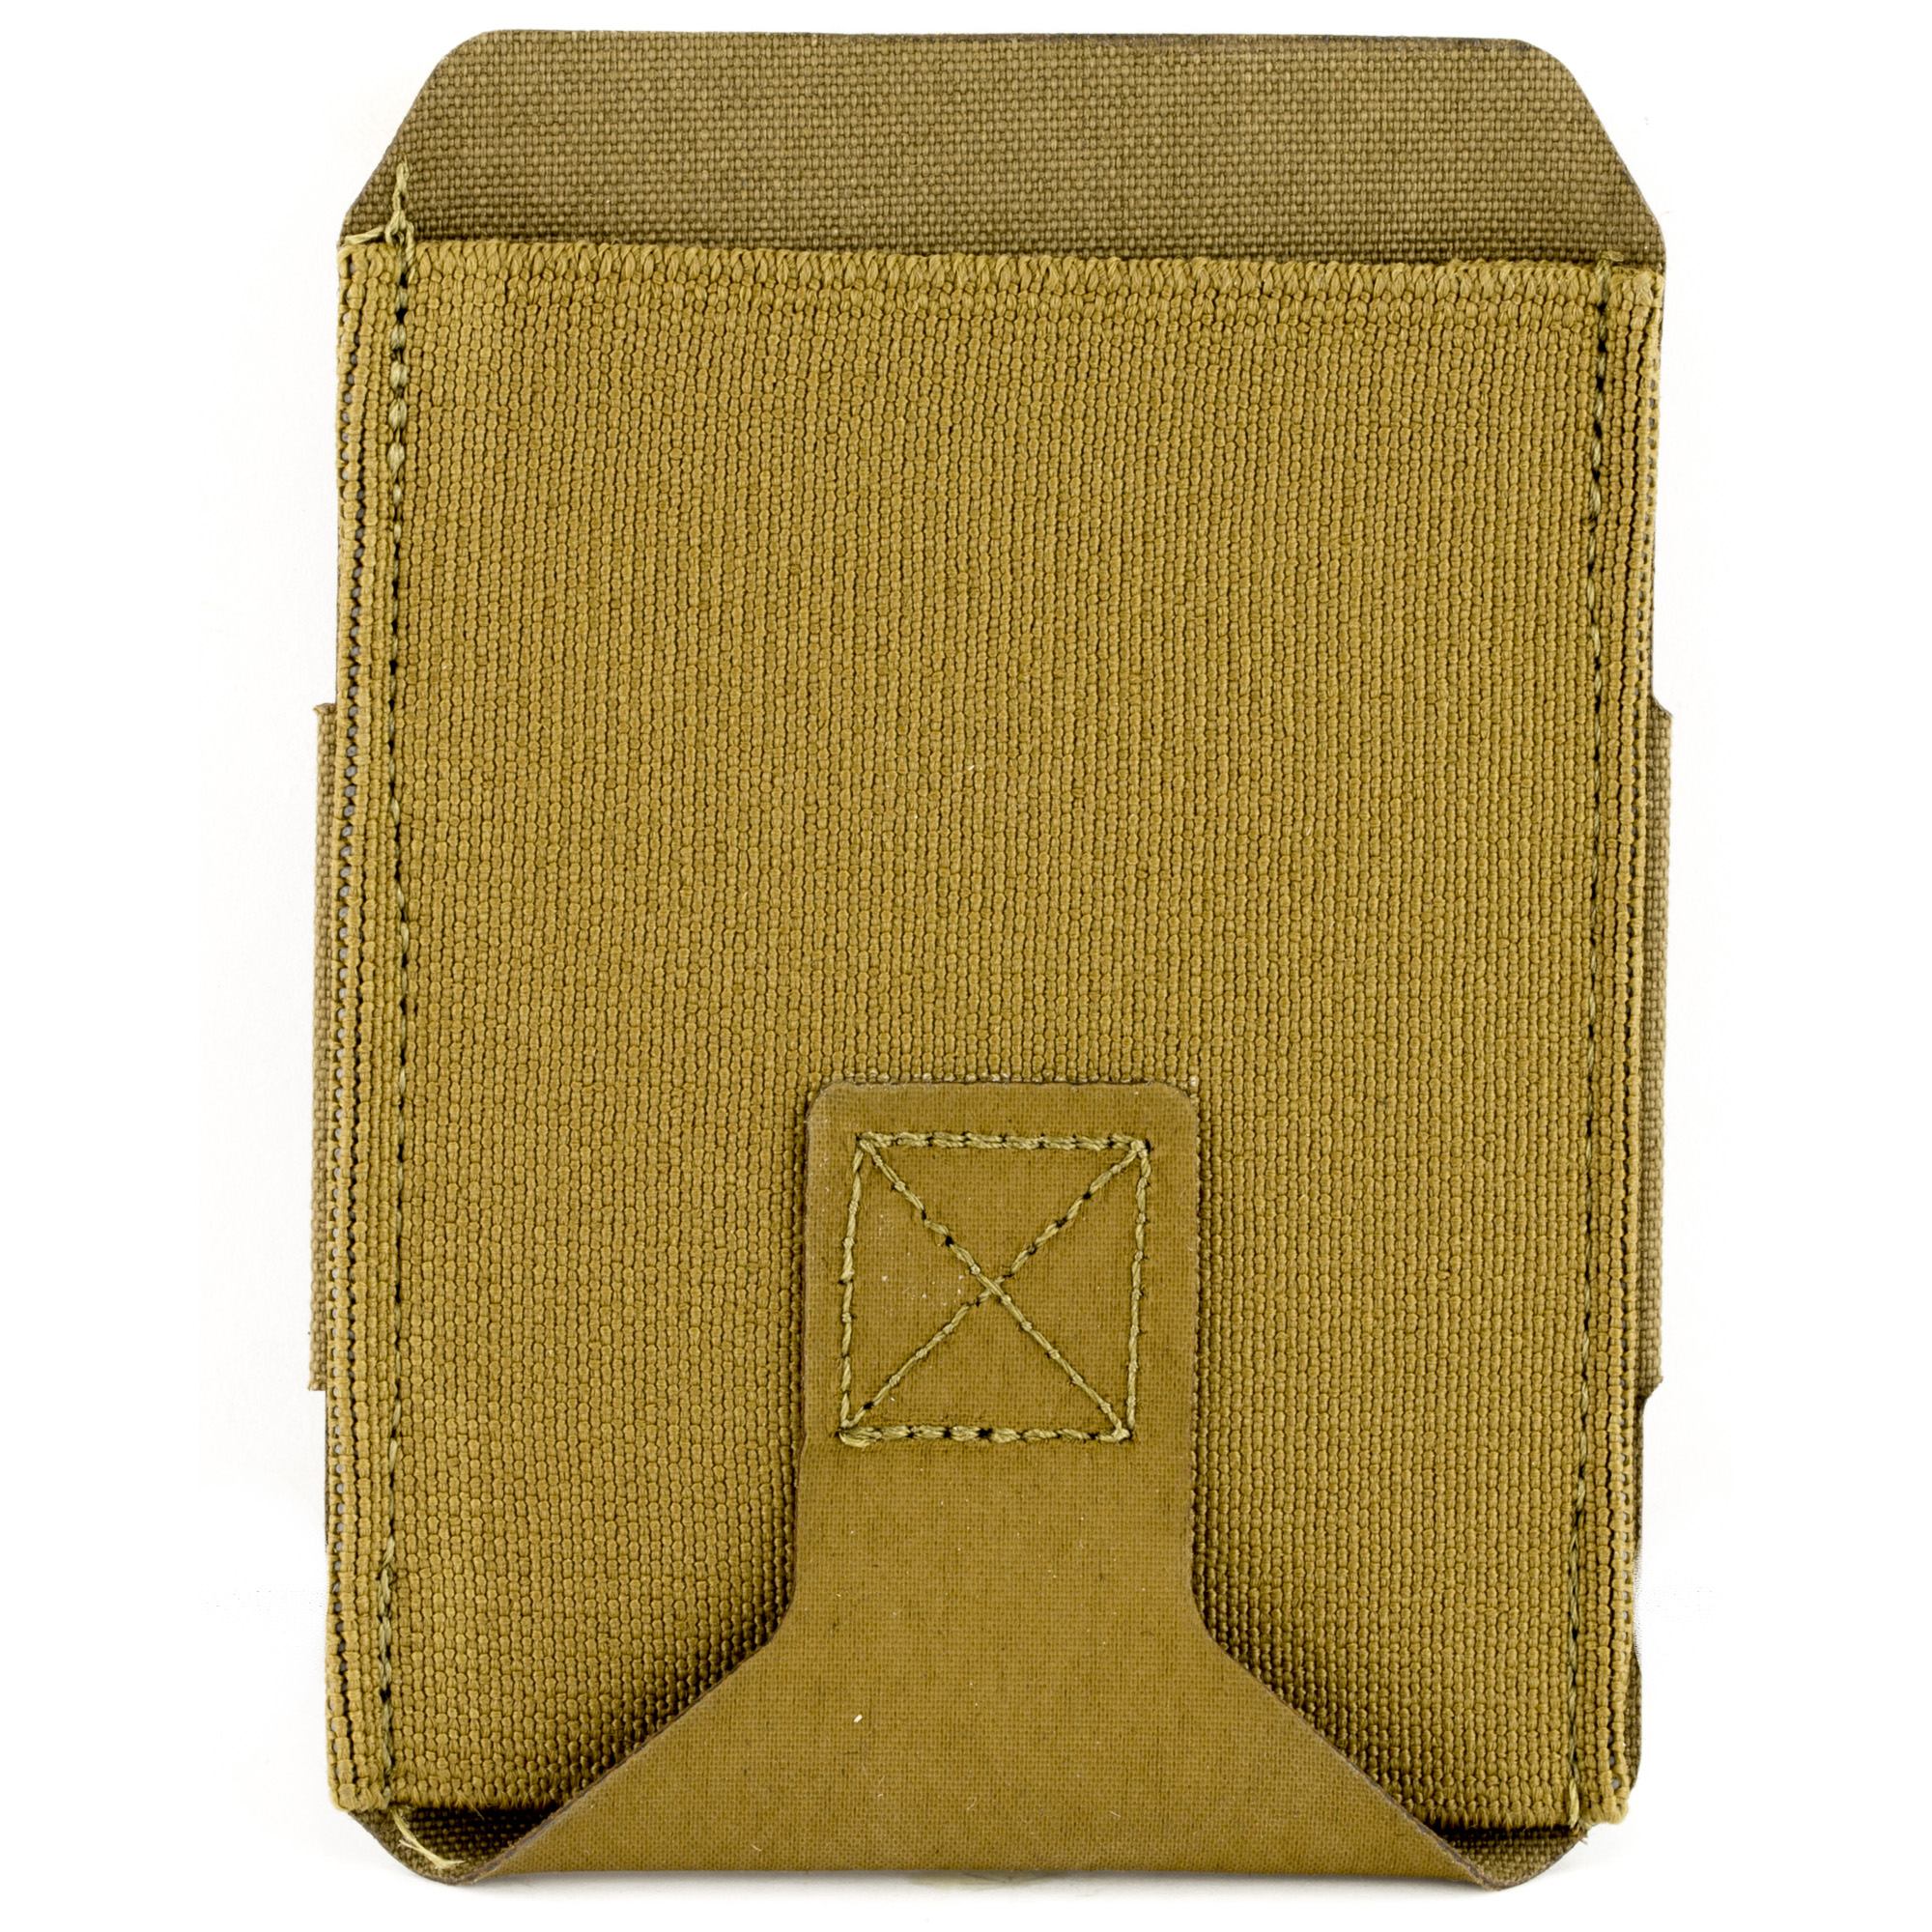 """The High Rise M4 Belt Pouch combines the combat-proven Ten-Speed(R) military-grade elastic with a belt attachment system anyone can use. The High Rise M4 Belt Pouch holds one M4 magazine or similar sized item higher up on the belt for maximum concealability. The High Rise M4 Belt Pouch attaches to the belt on regular everyday pants"""" rigger's belts"""" or duty belts with a hook and loop attachment system. The attachment system is split so the pouch can be attached on both sides of a belt loop to keep the pouch from rotating. The hook and loop attachment are able to be removed so the pouch can be mounted horizontally on the belt."""